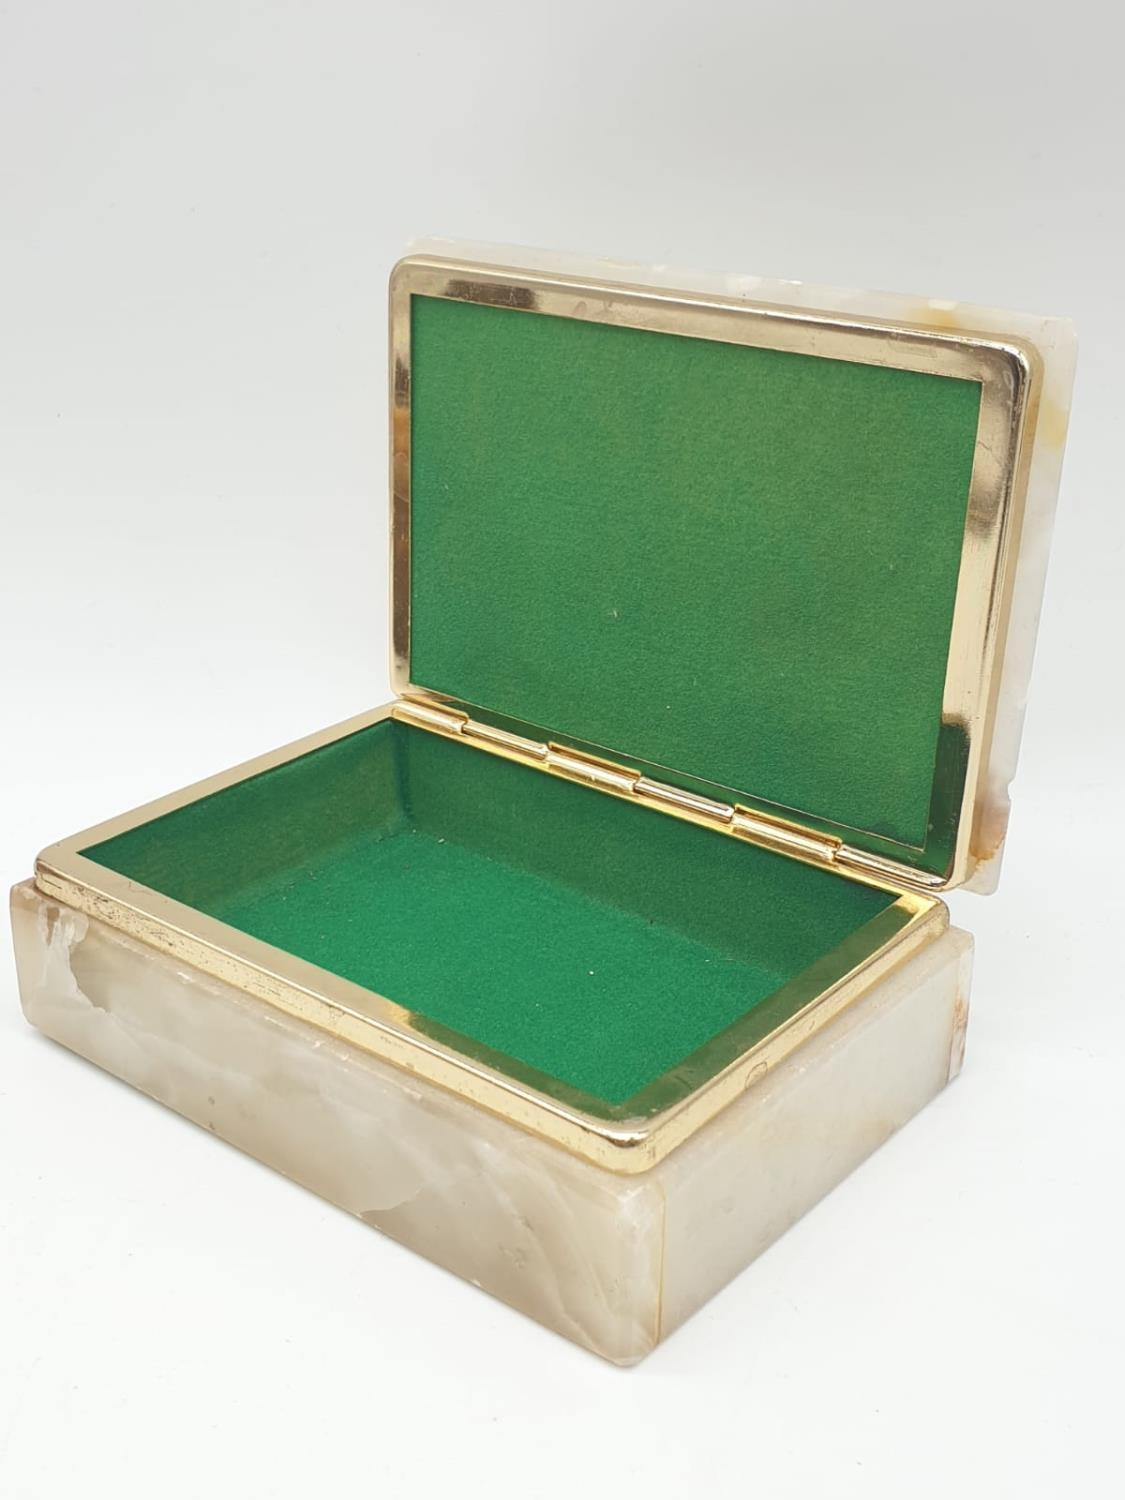 An onyx cigarette box, lighter and 2 onyx ash trays (small chip on cigarette box lid). - Image 4 of 16